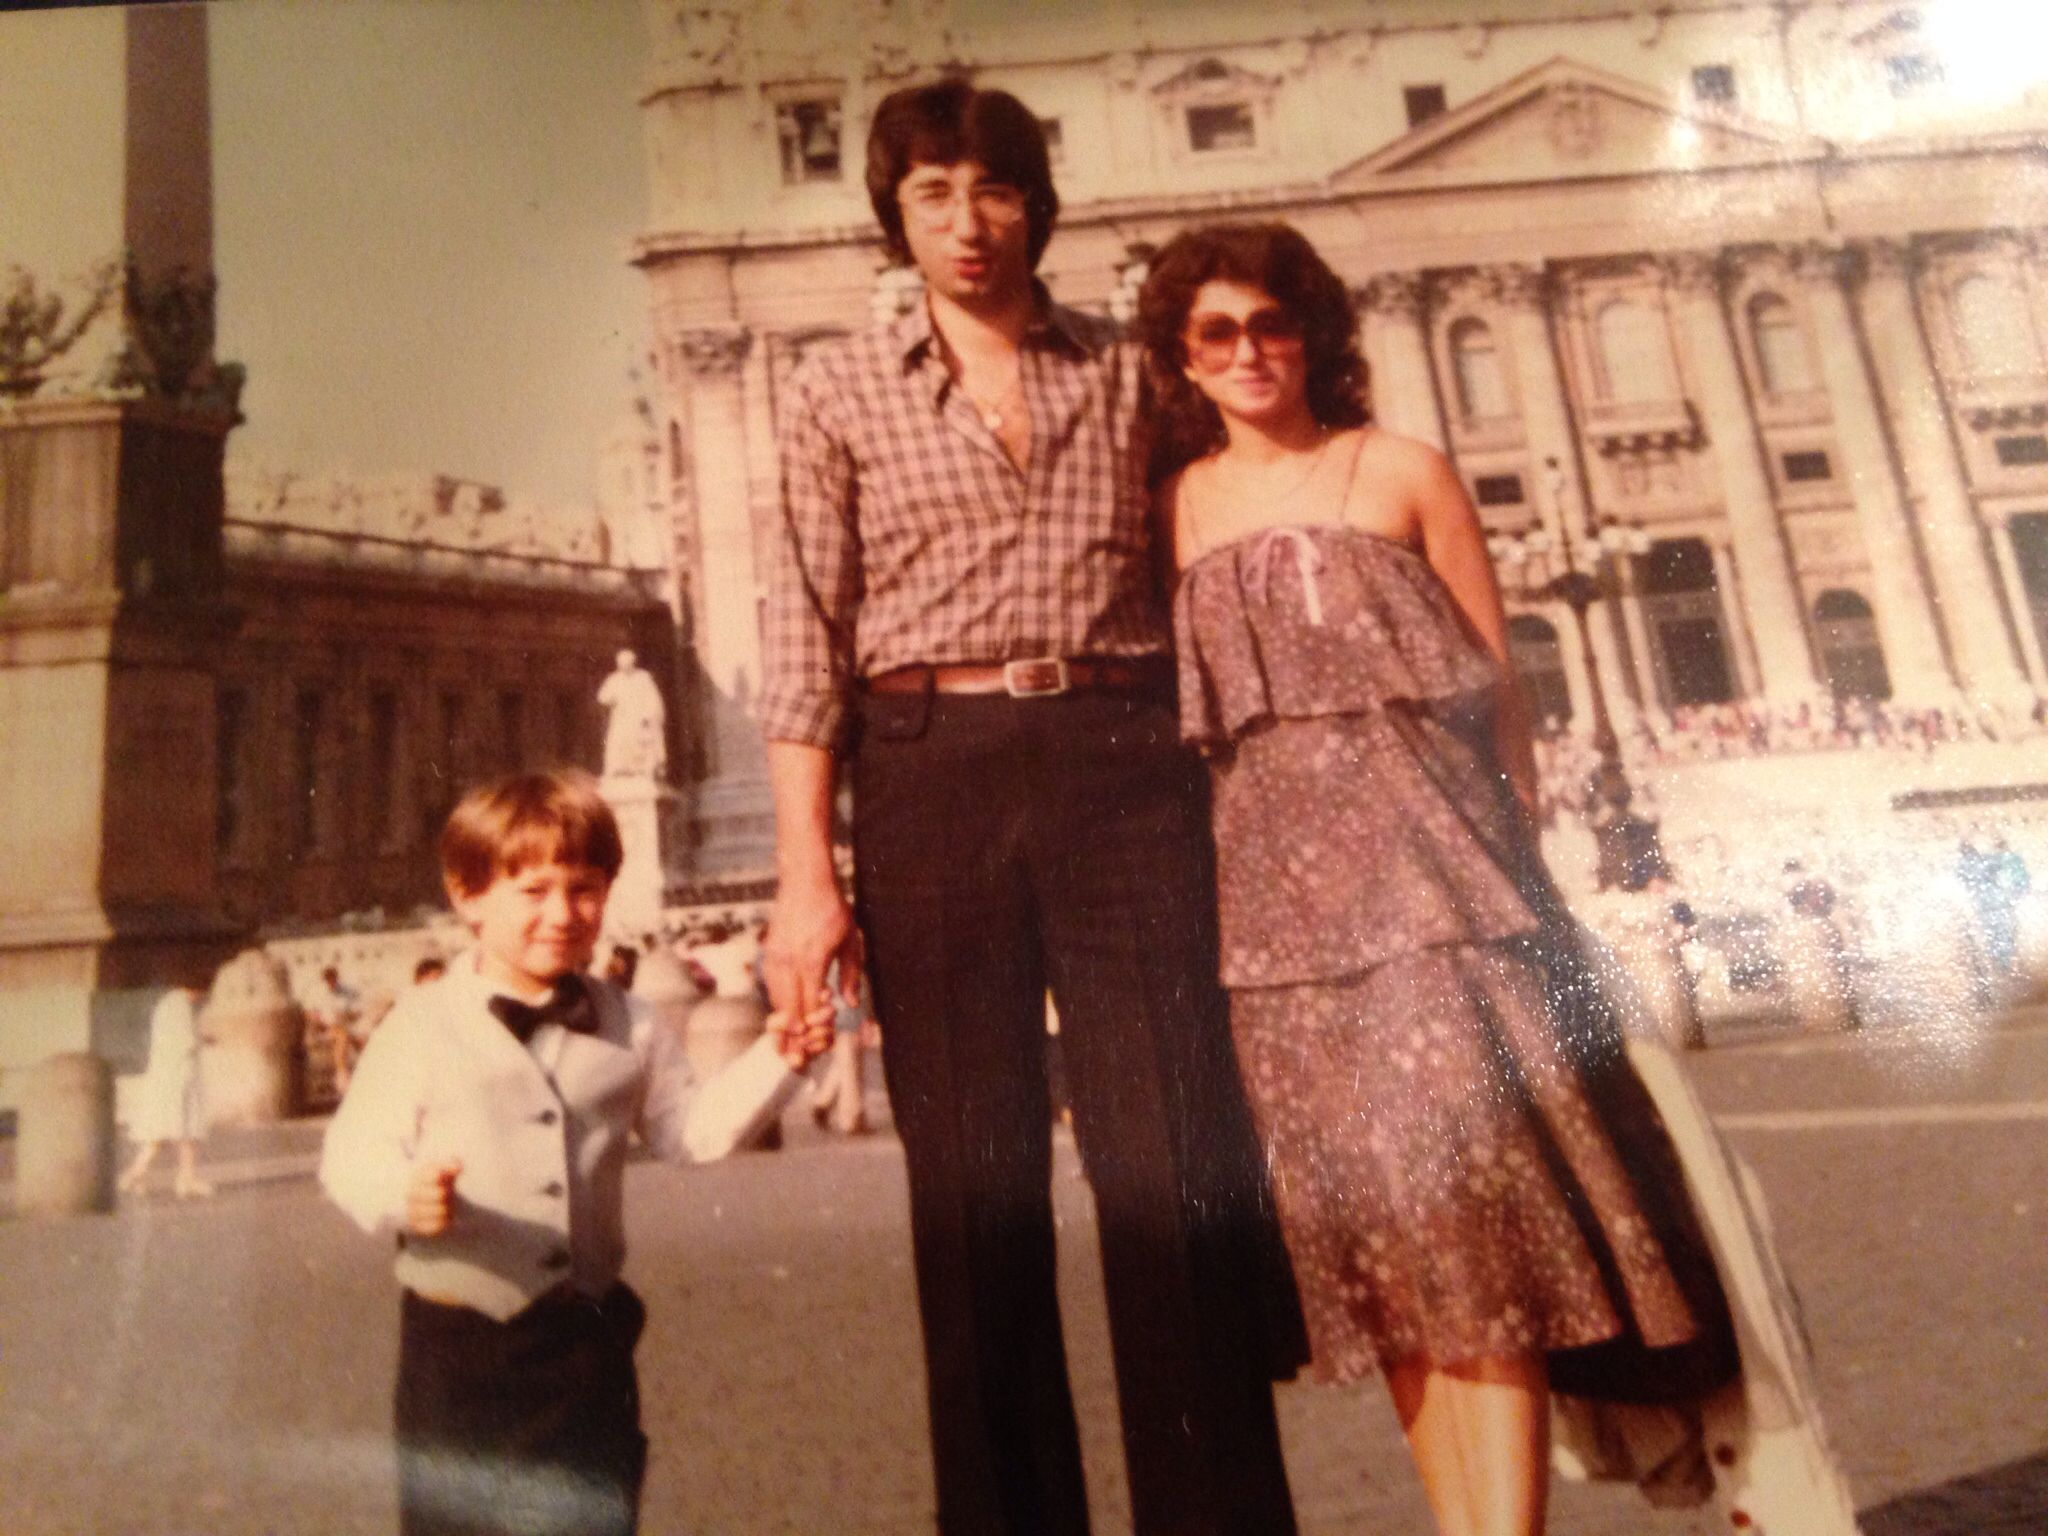 Rome, Italy...my first visit out if 3 at 4 years old